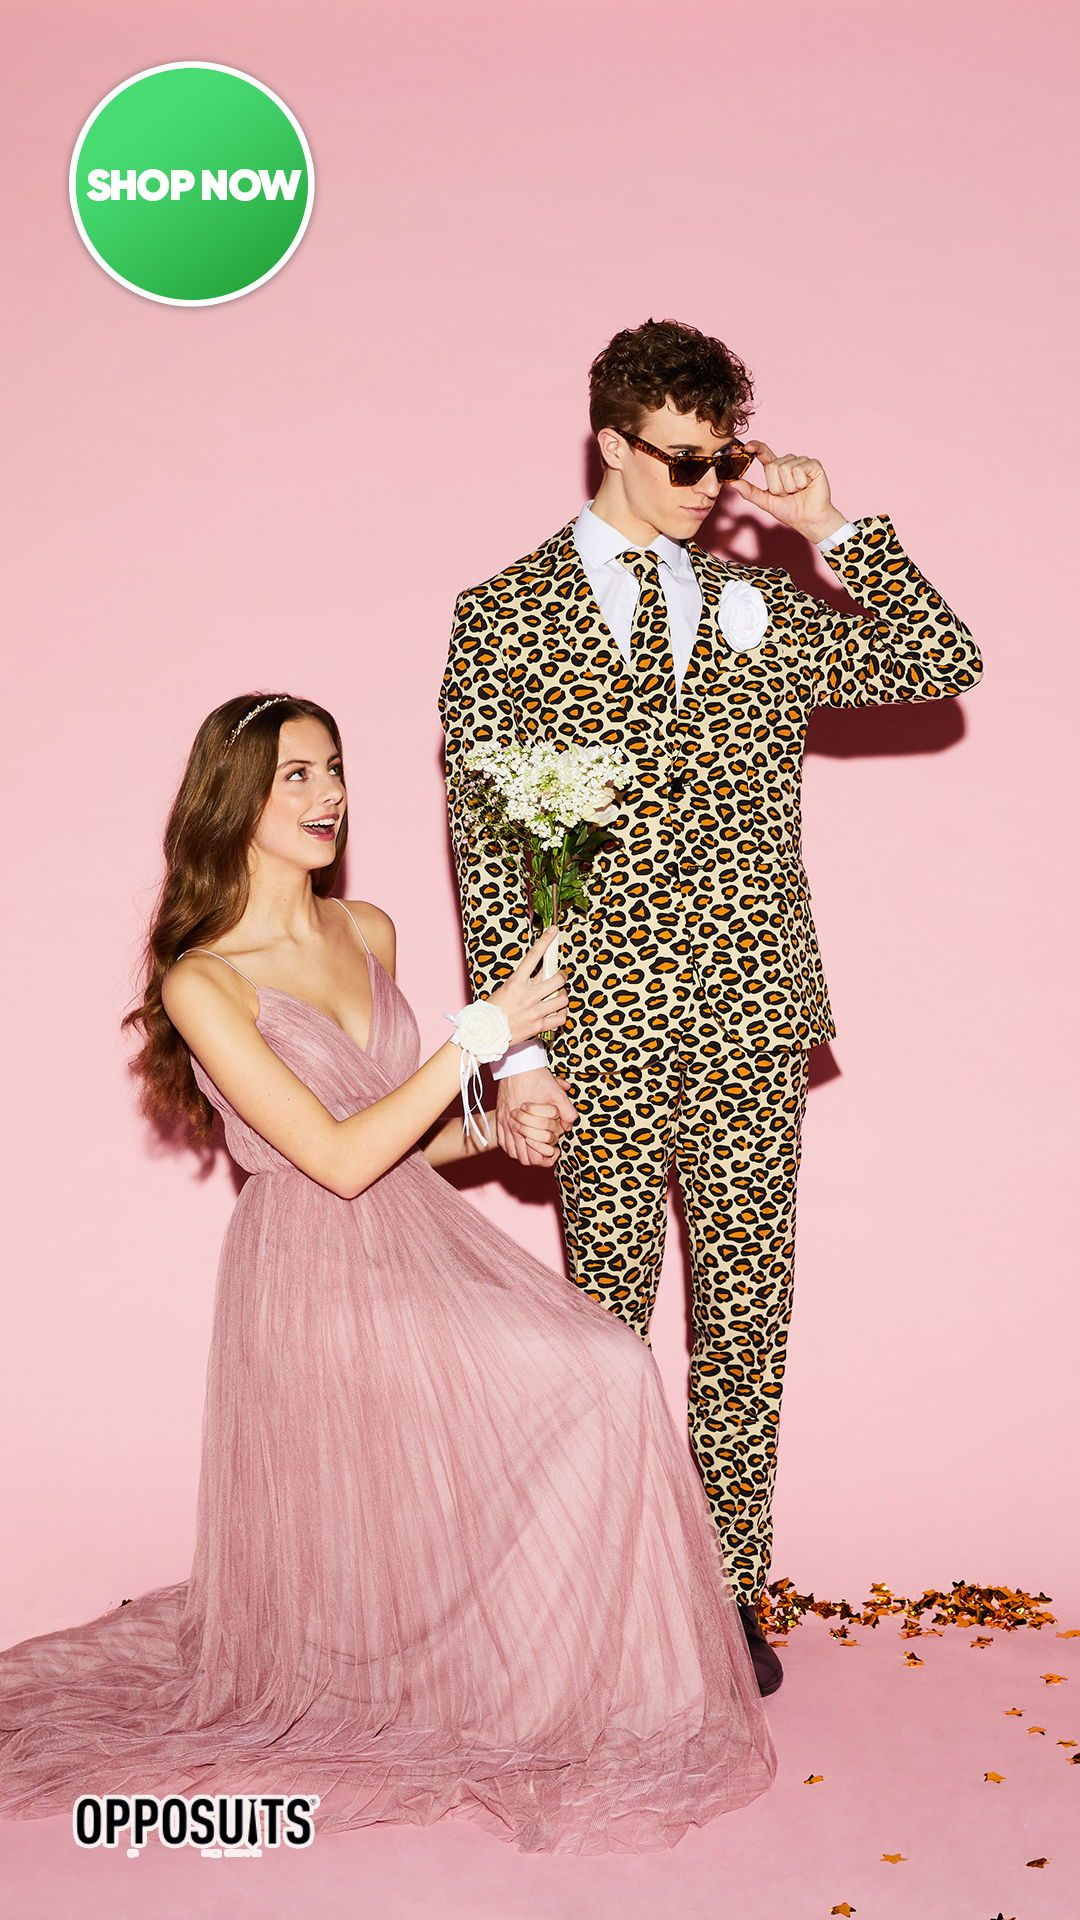 Funny Prom Suits Unique Suits For Prom Opposuits Prom Suits Unique Prom Suits Prom Suits Unique [ 1920 x 1080 Pixel ]